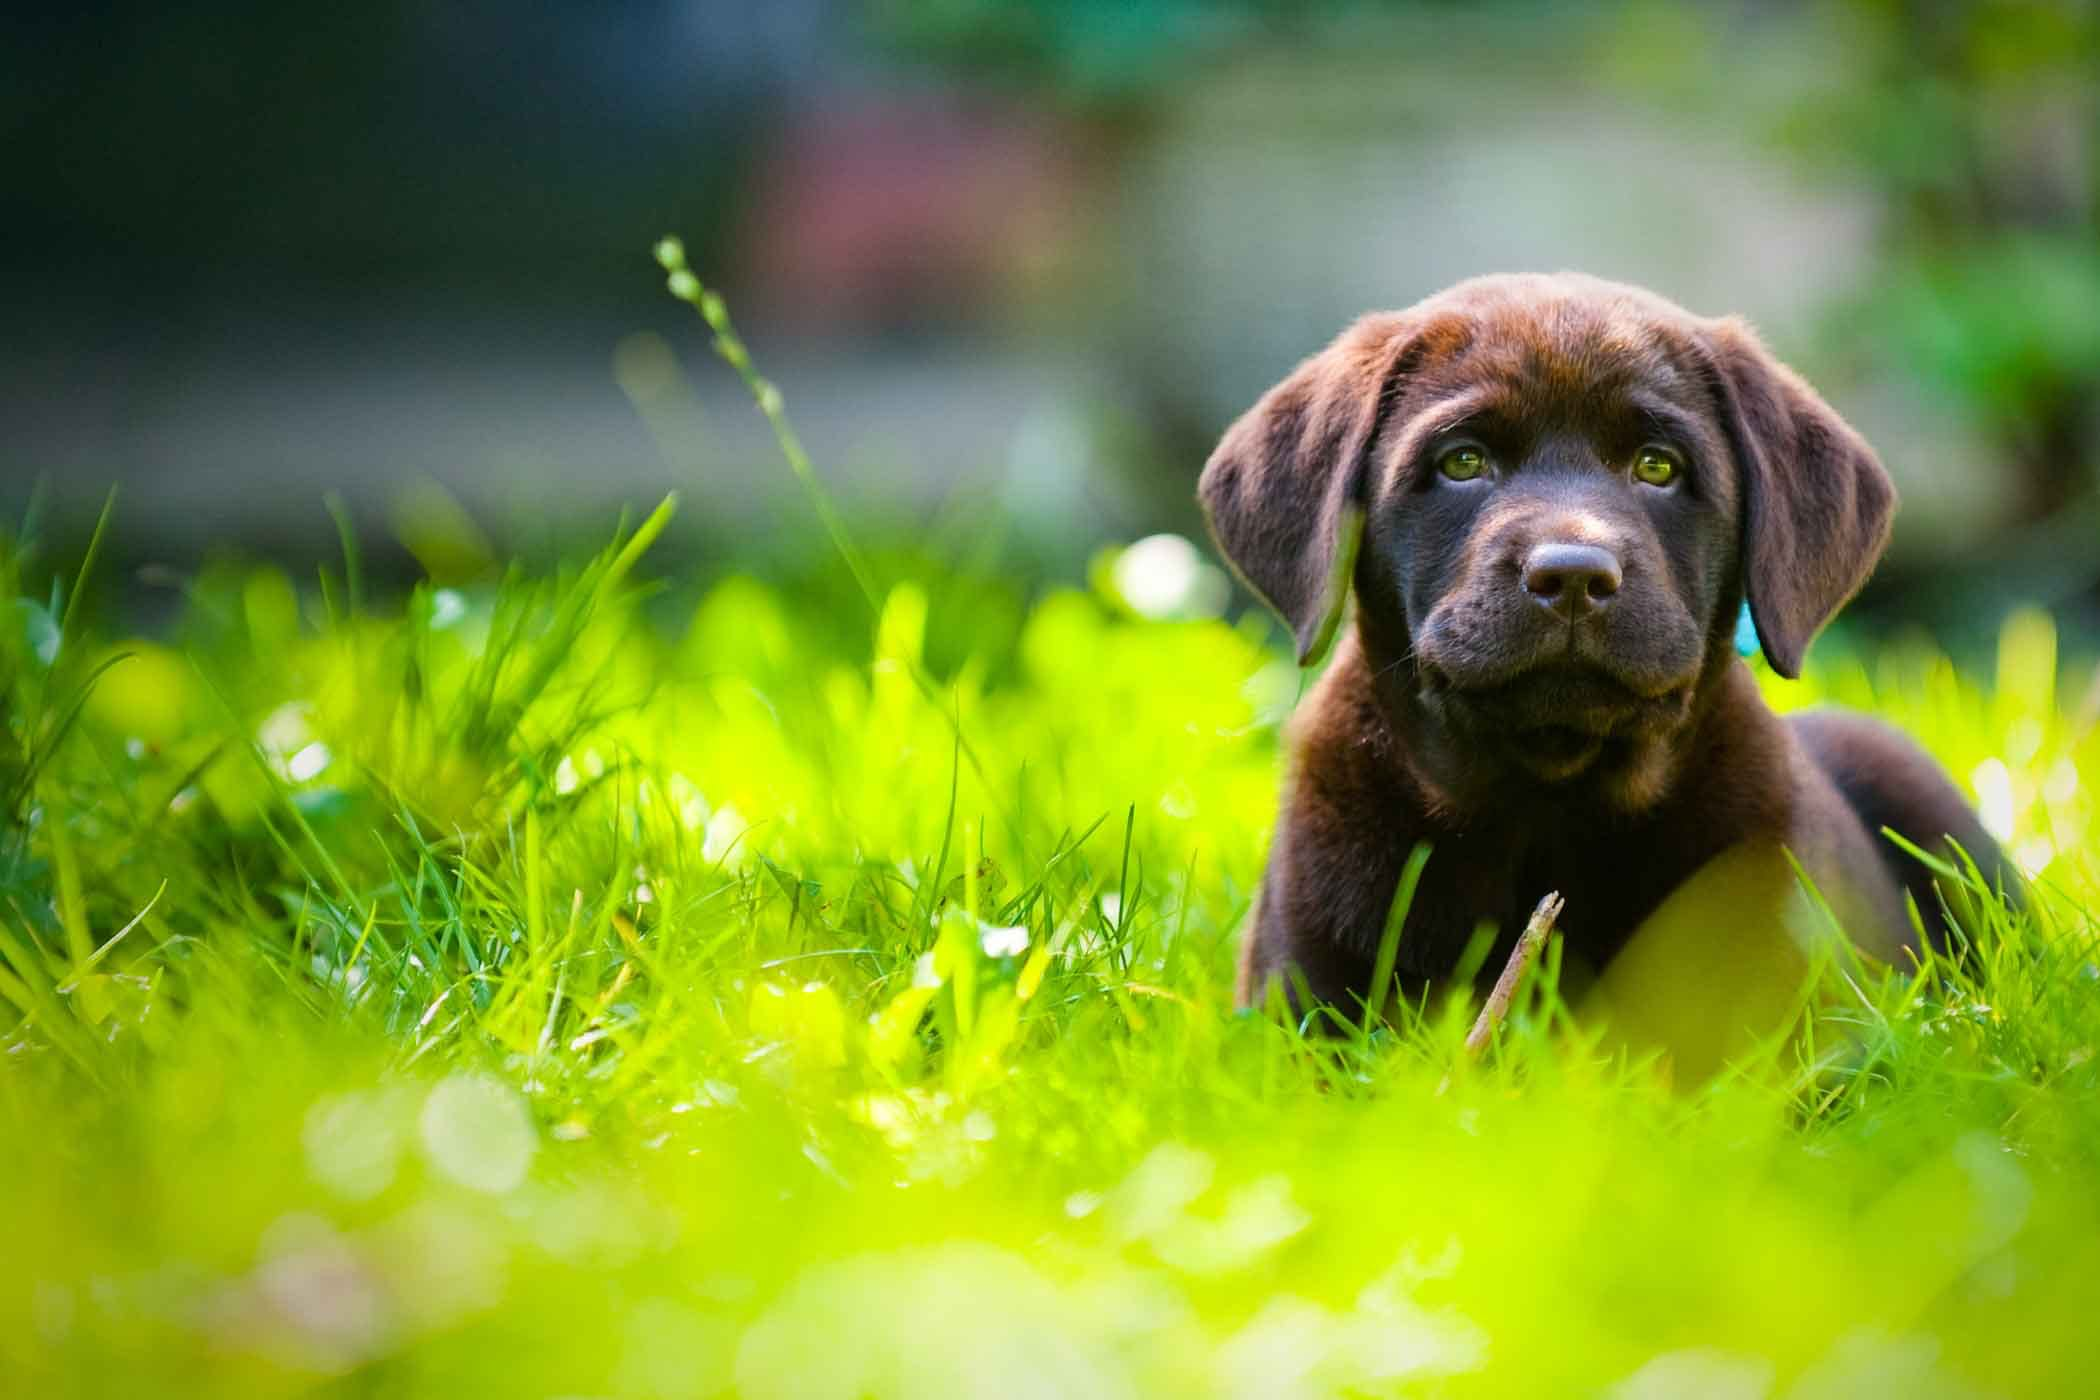 How to Train Your Dog to Stay in an Unfenced Yard | Wag!